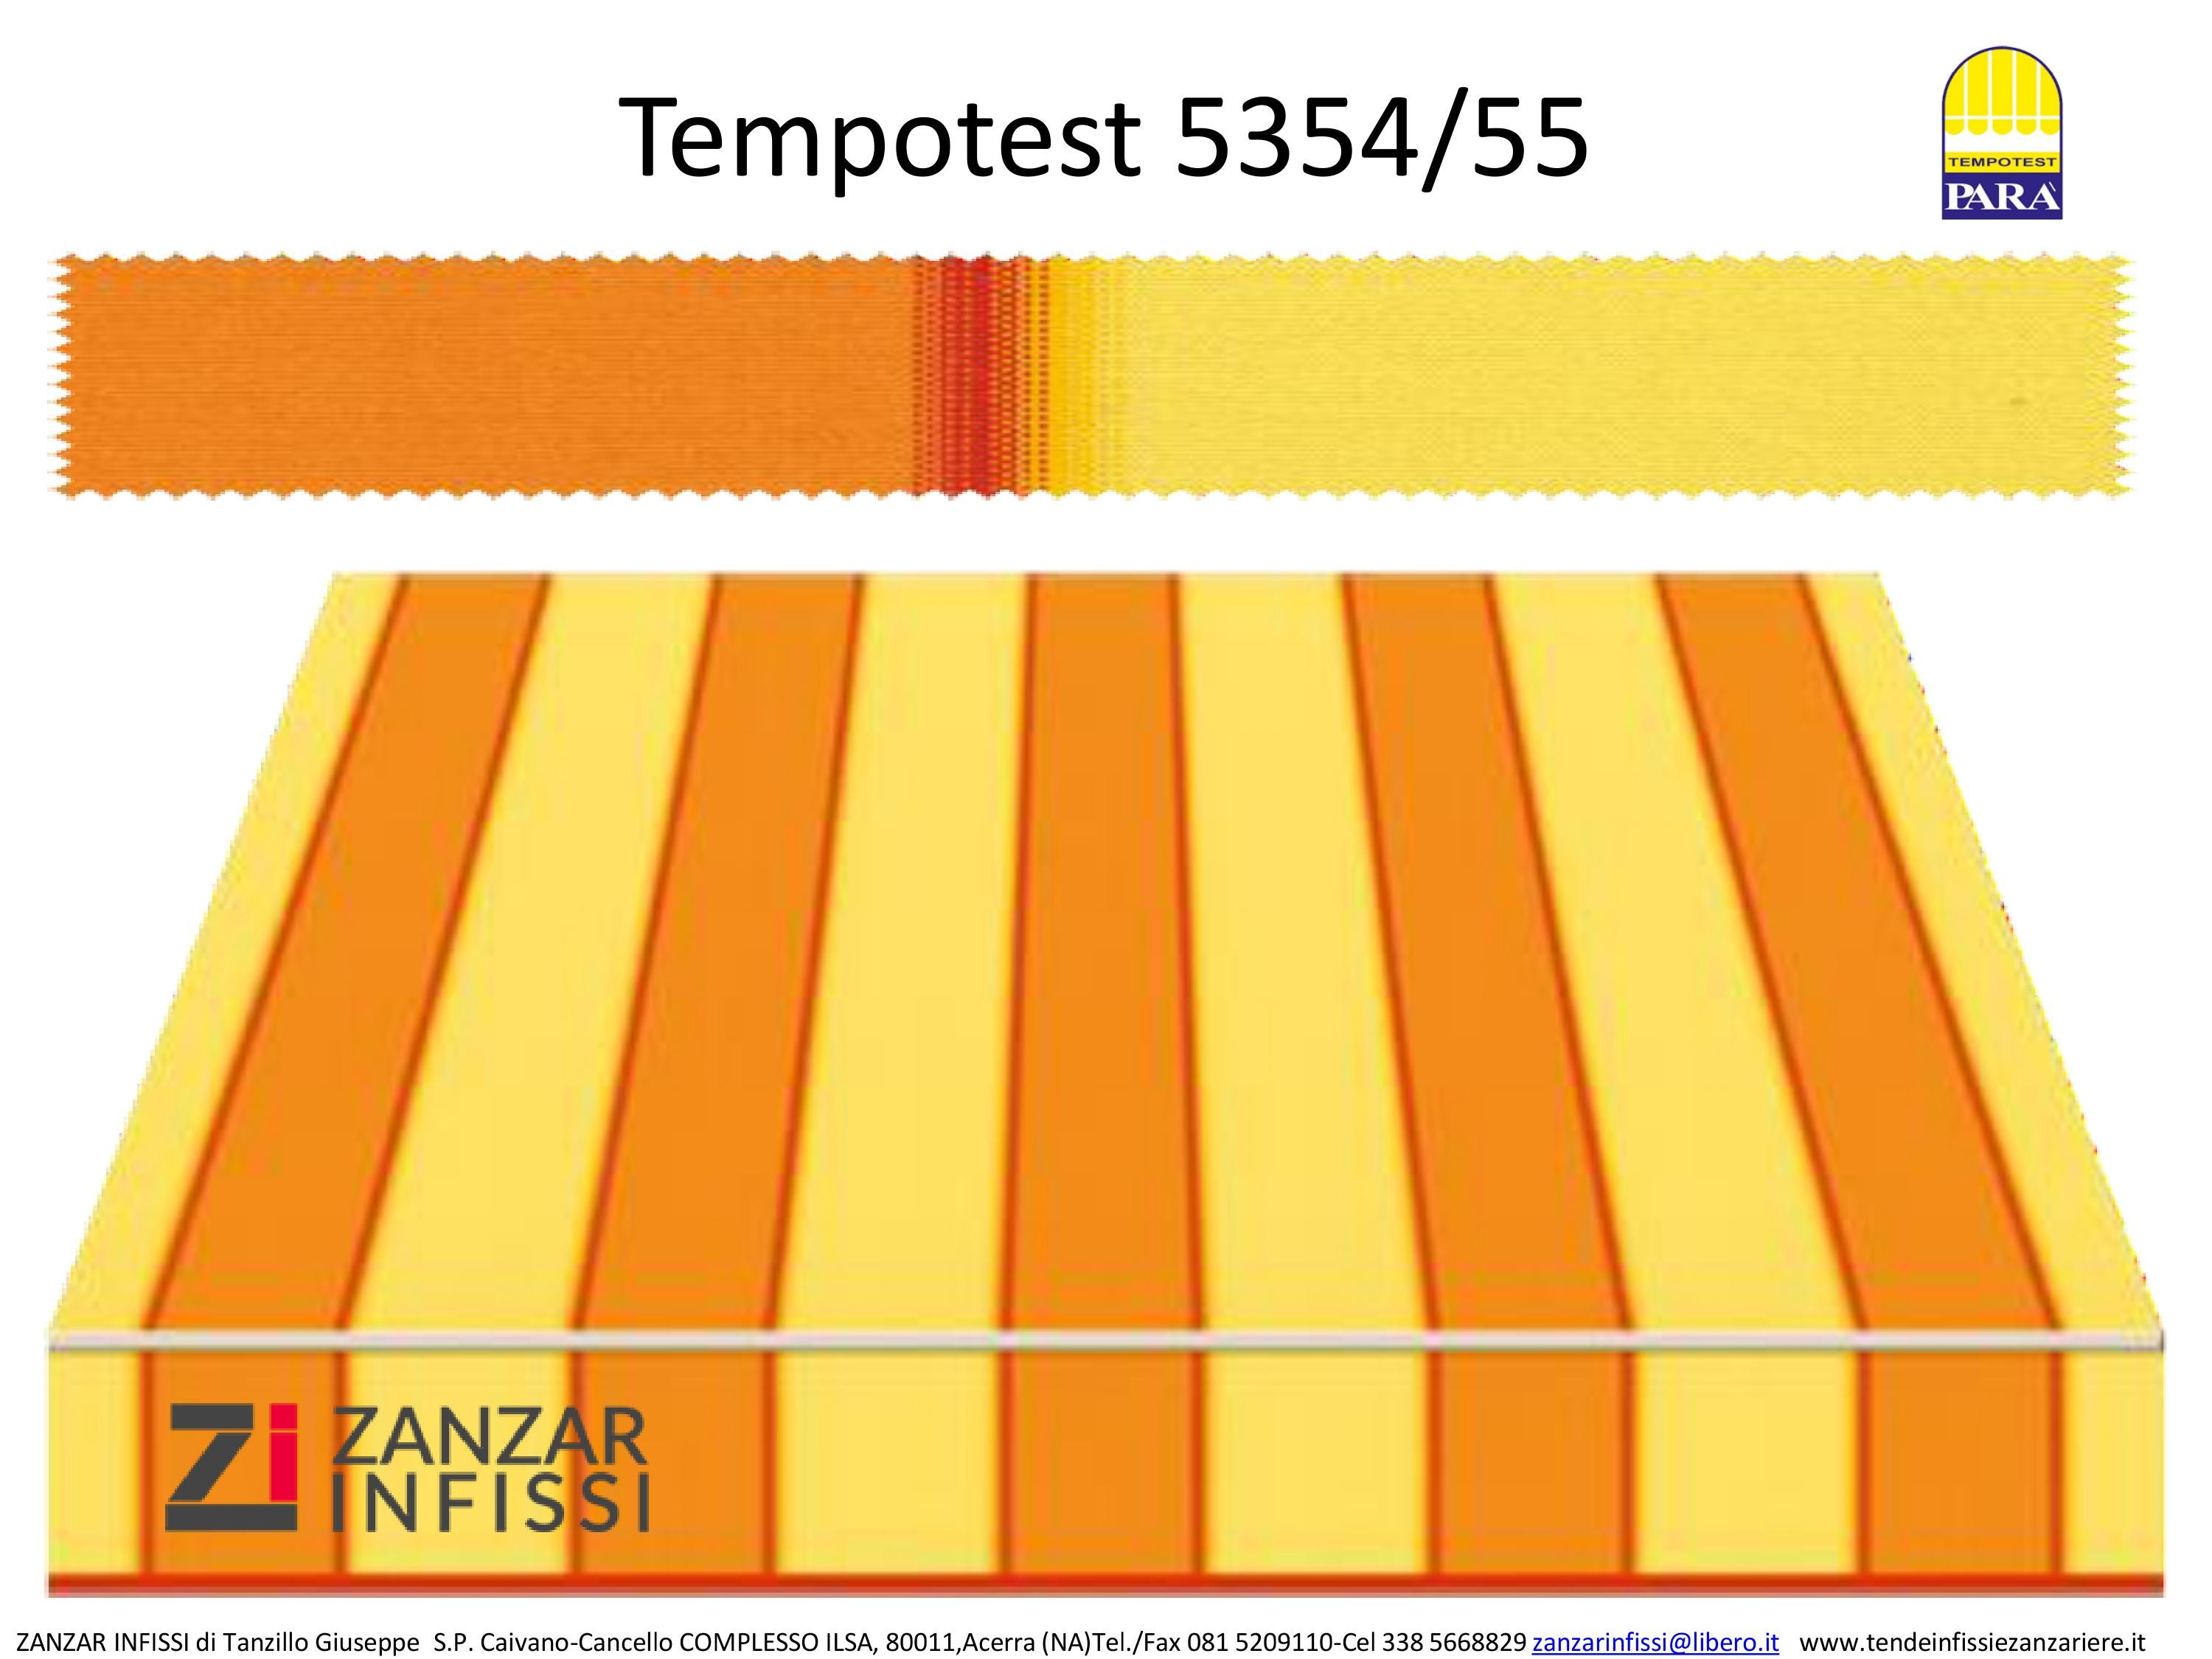 Tempotest 5354/55